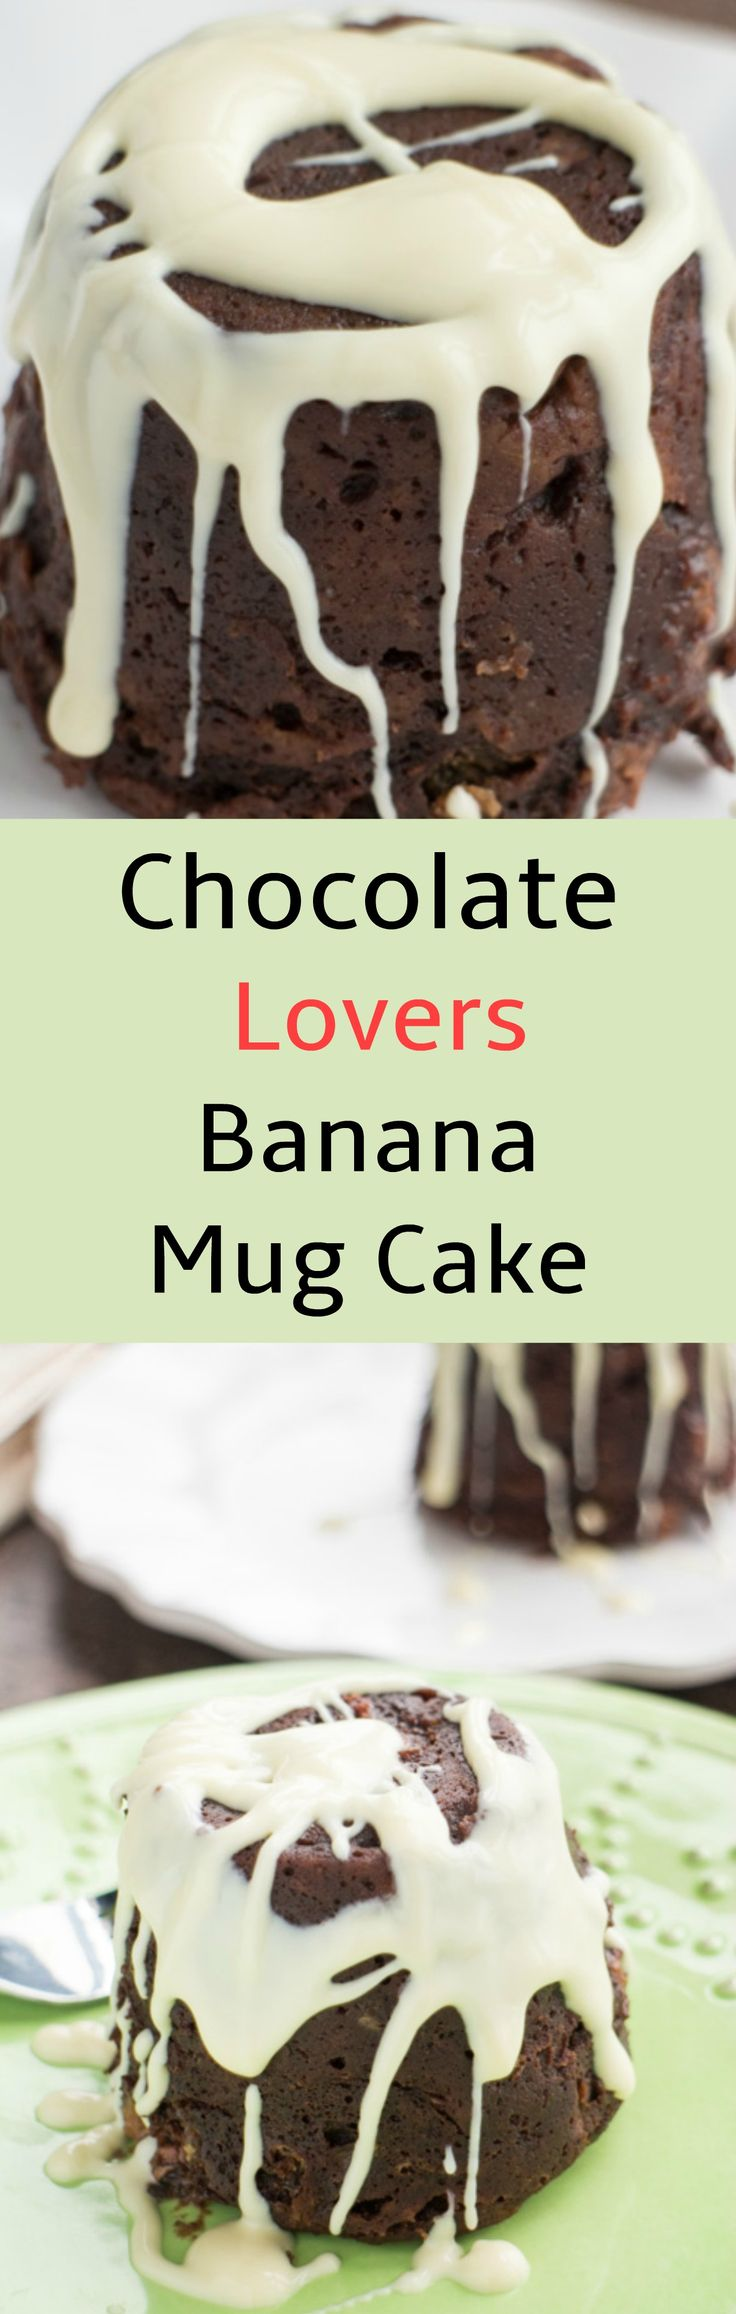 Chocolate Lovers Banana Mug Cake that only takes 2 minutes in the microwave to make. You won't believe how fudgy this cake is!